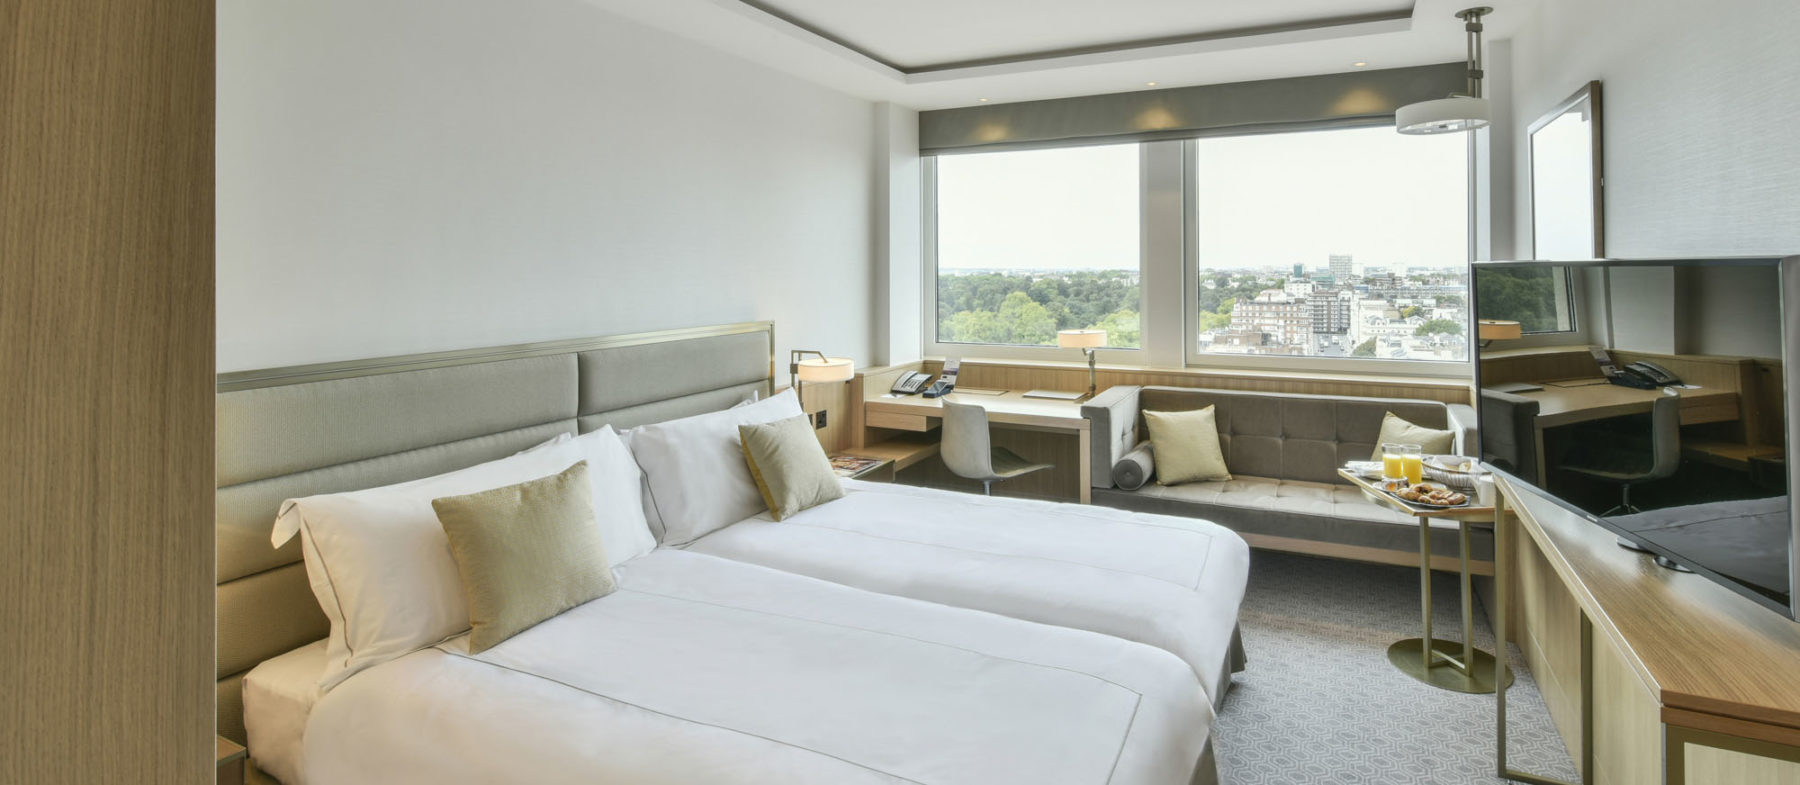 Twin hotel rooms near Lancaster Gate